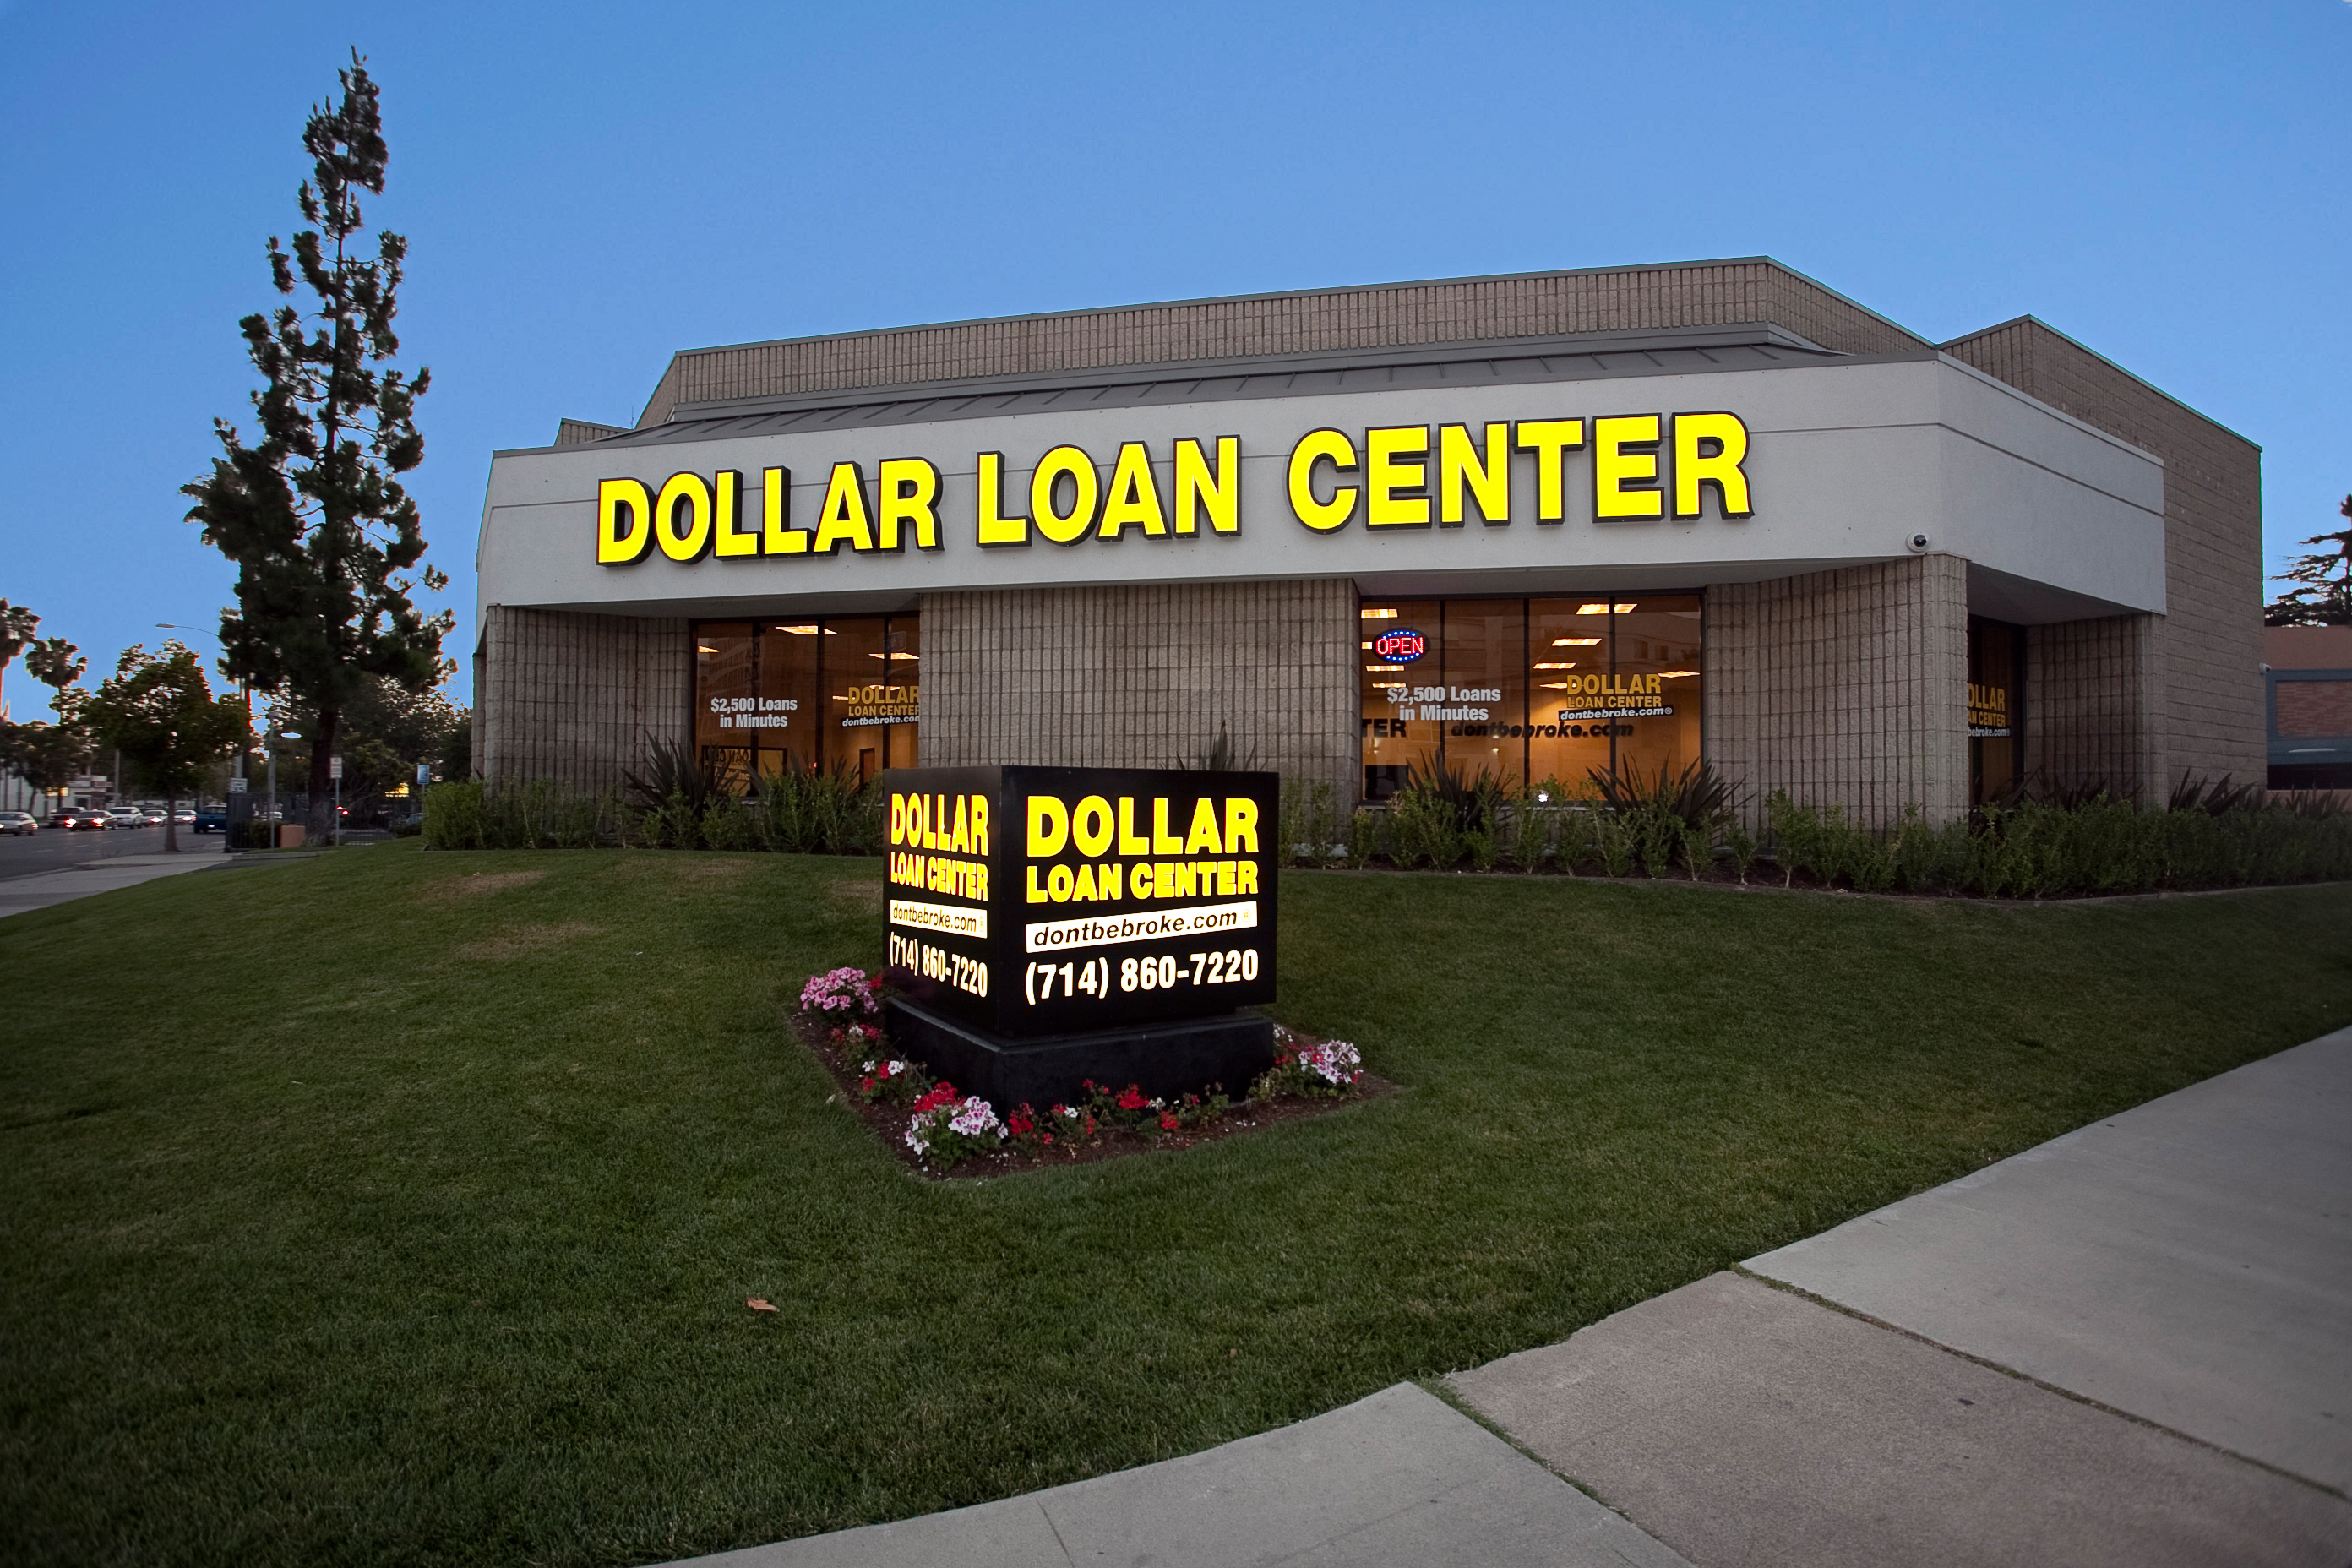 dollarloancenter - 3